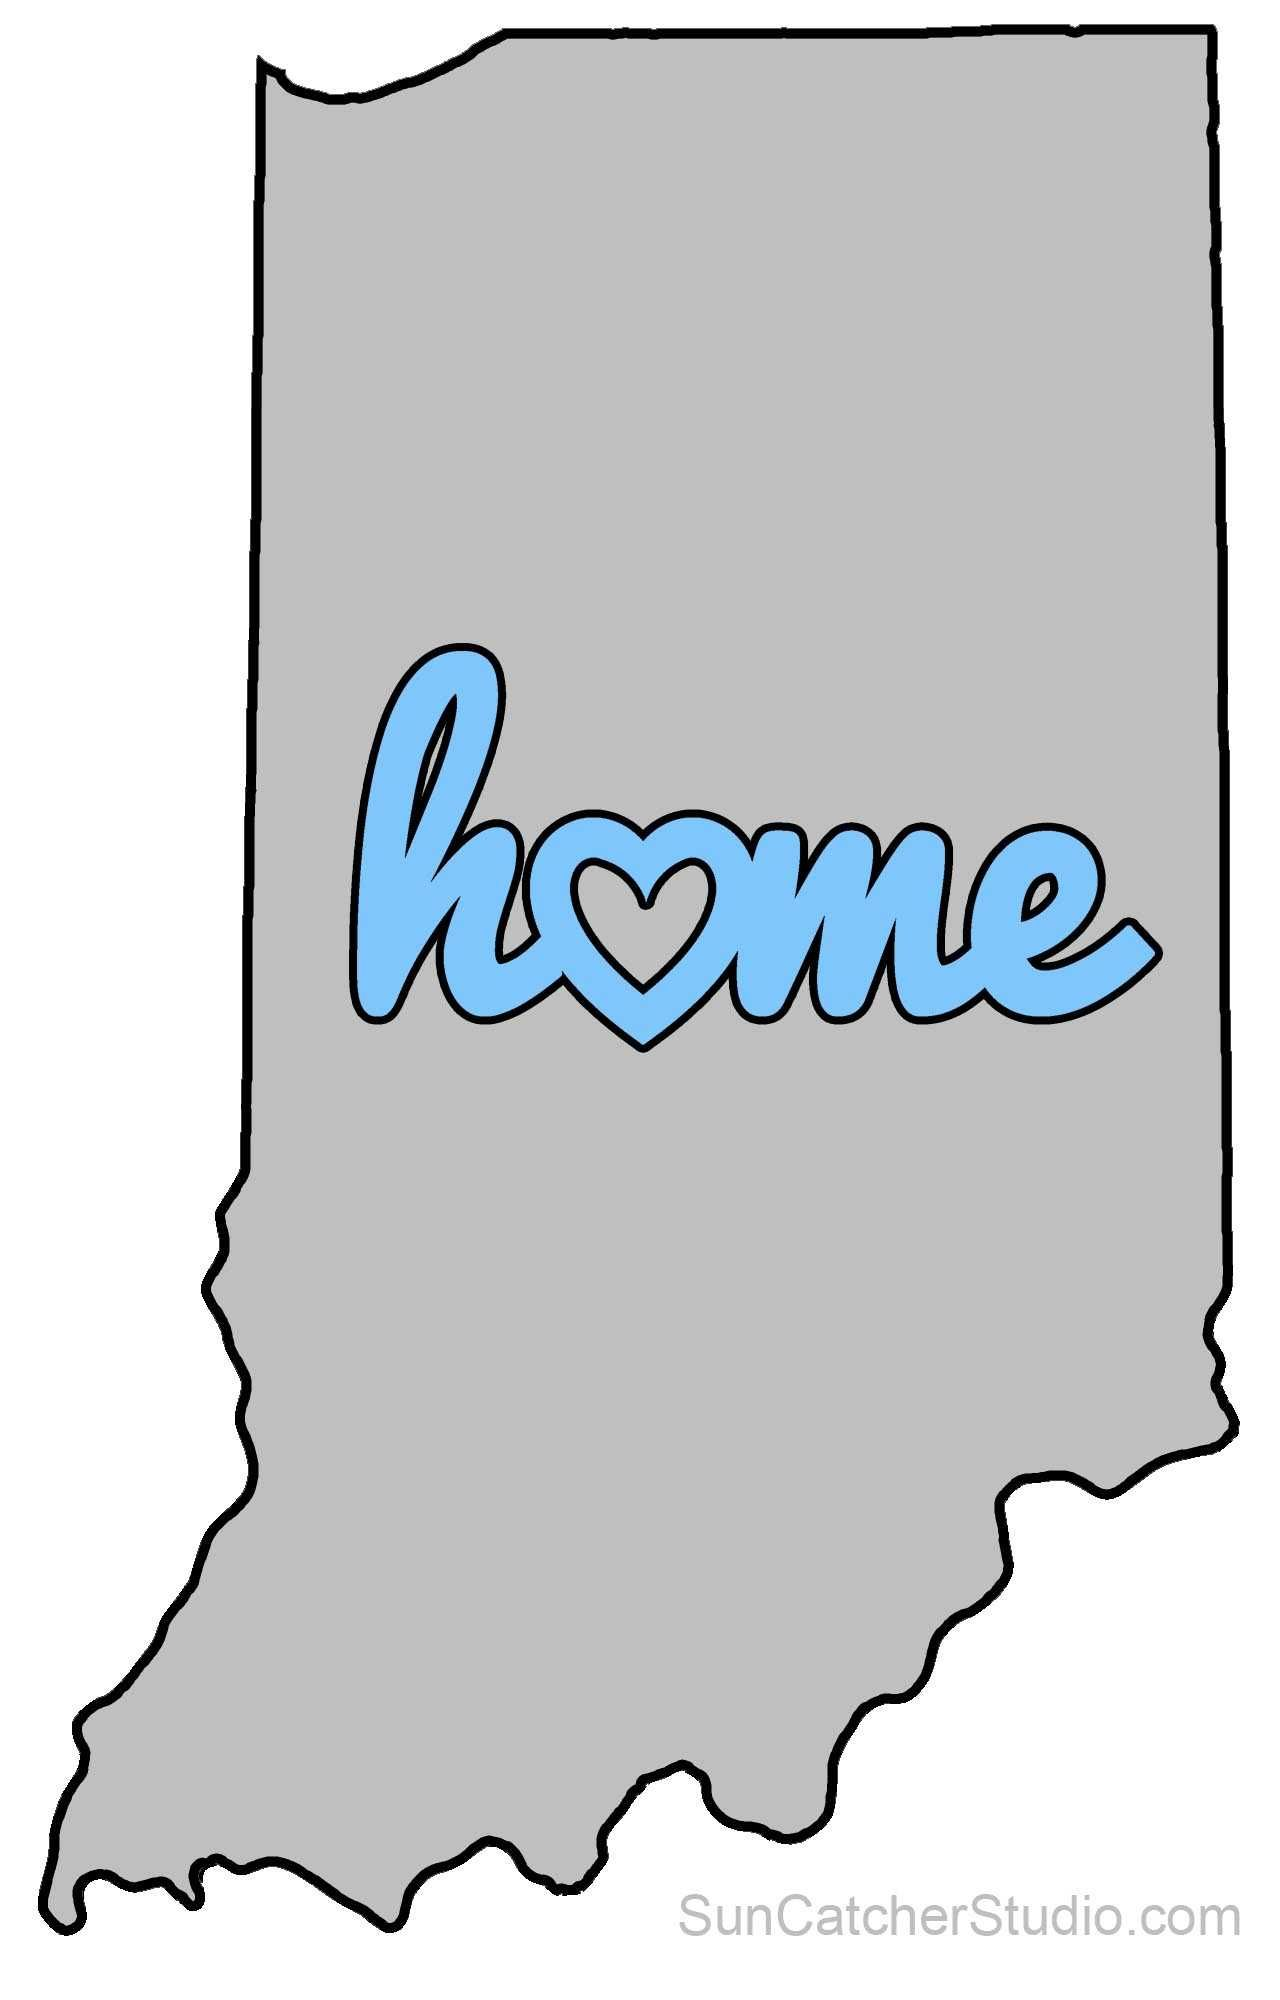 Indiana State Map Outline on indiana state outline eps, indiana state flower, california state outline, indiana state geography, new orleans map outline, indiana outline vector, indiana state outline clip art, kentucky state shape outline, alabama map outline, tennessee map outline, mo state outline, indiana state highest point, columbian exchange map outline, ohio state outline, indiana state shape, indiana city outline, south florida map outline, houston map outline, cincinnati map outline, aztec empire map outline,